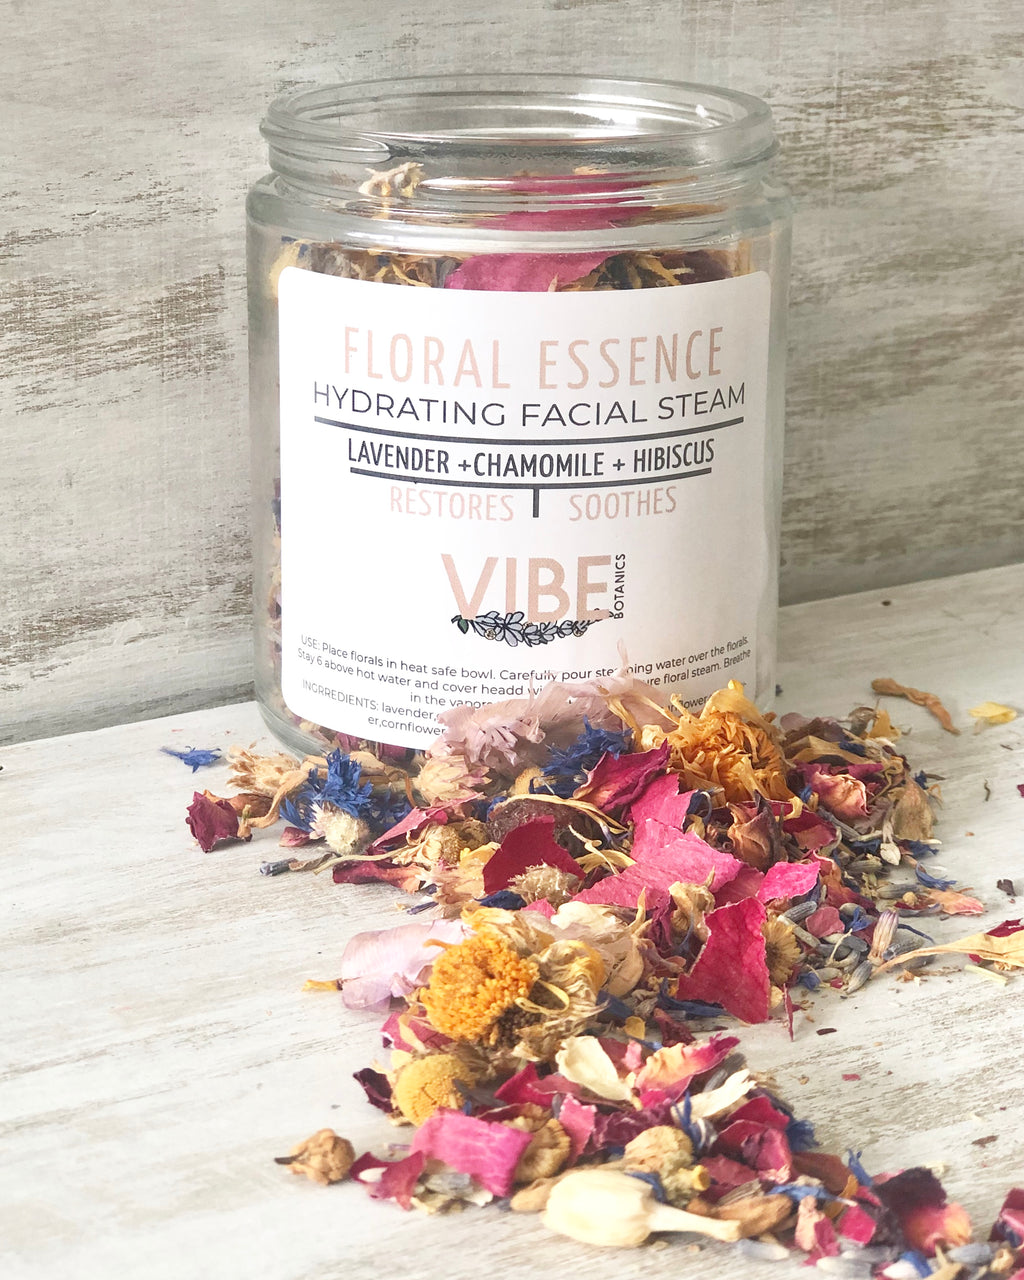 FLORAL ESSENCE Facial Steam